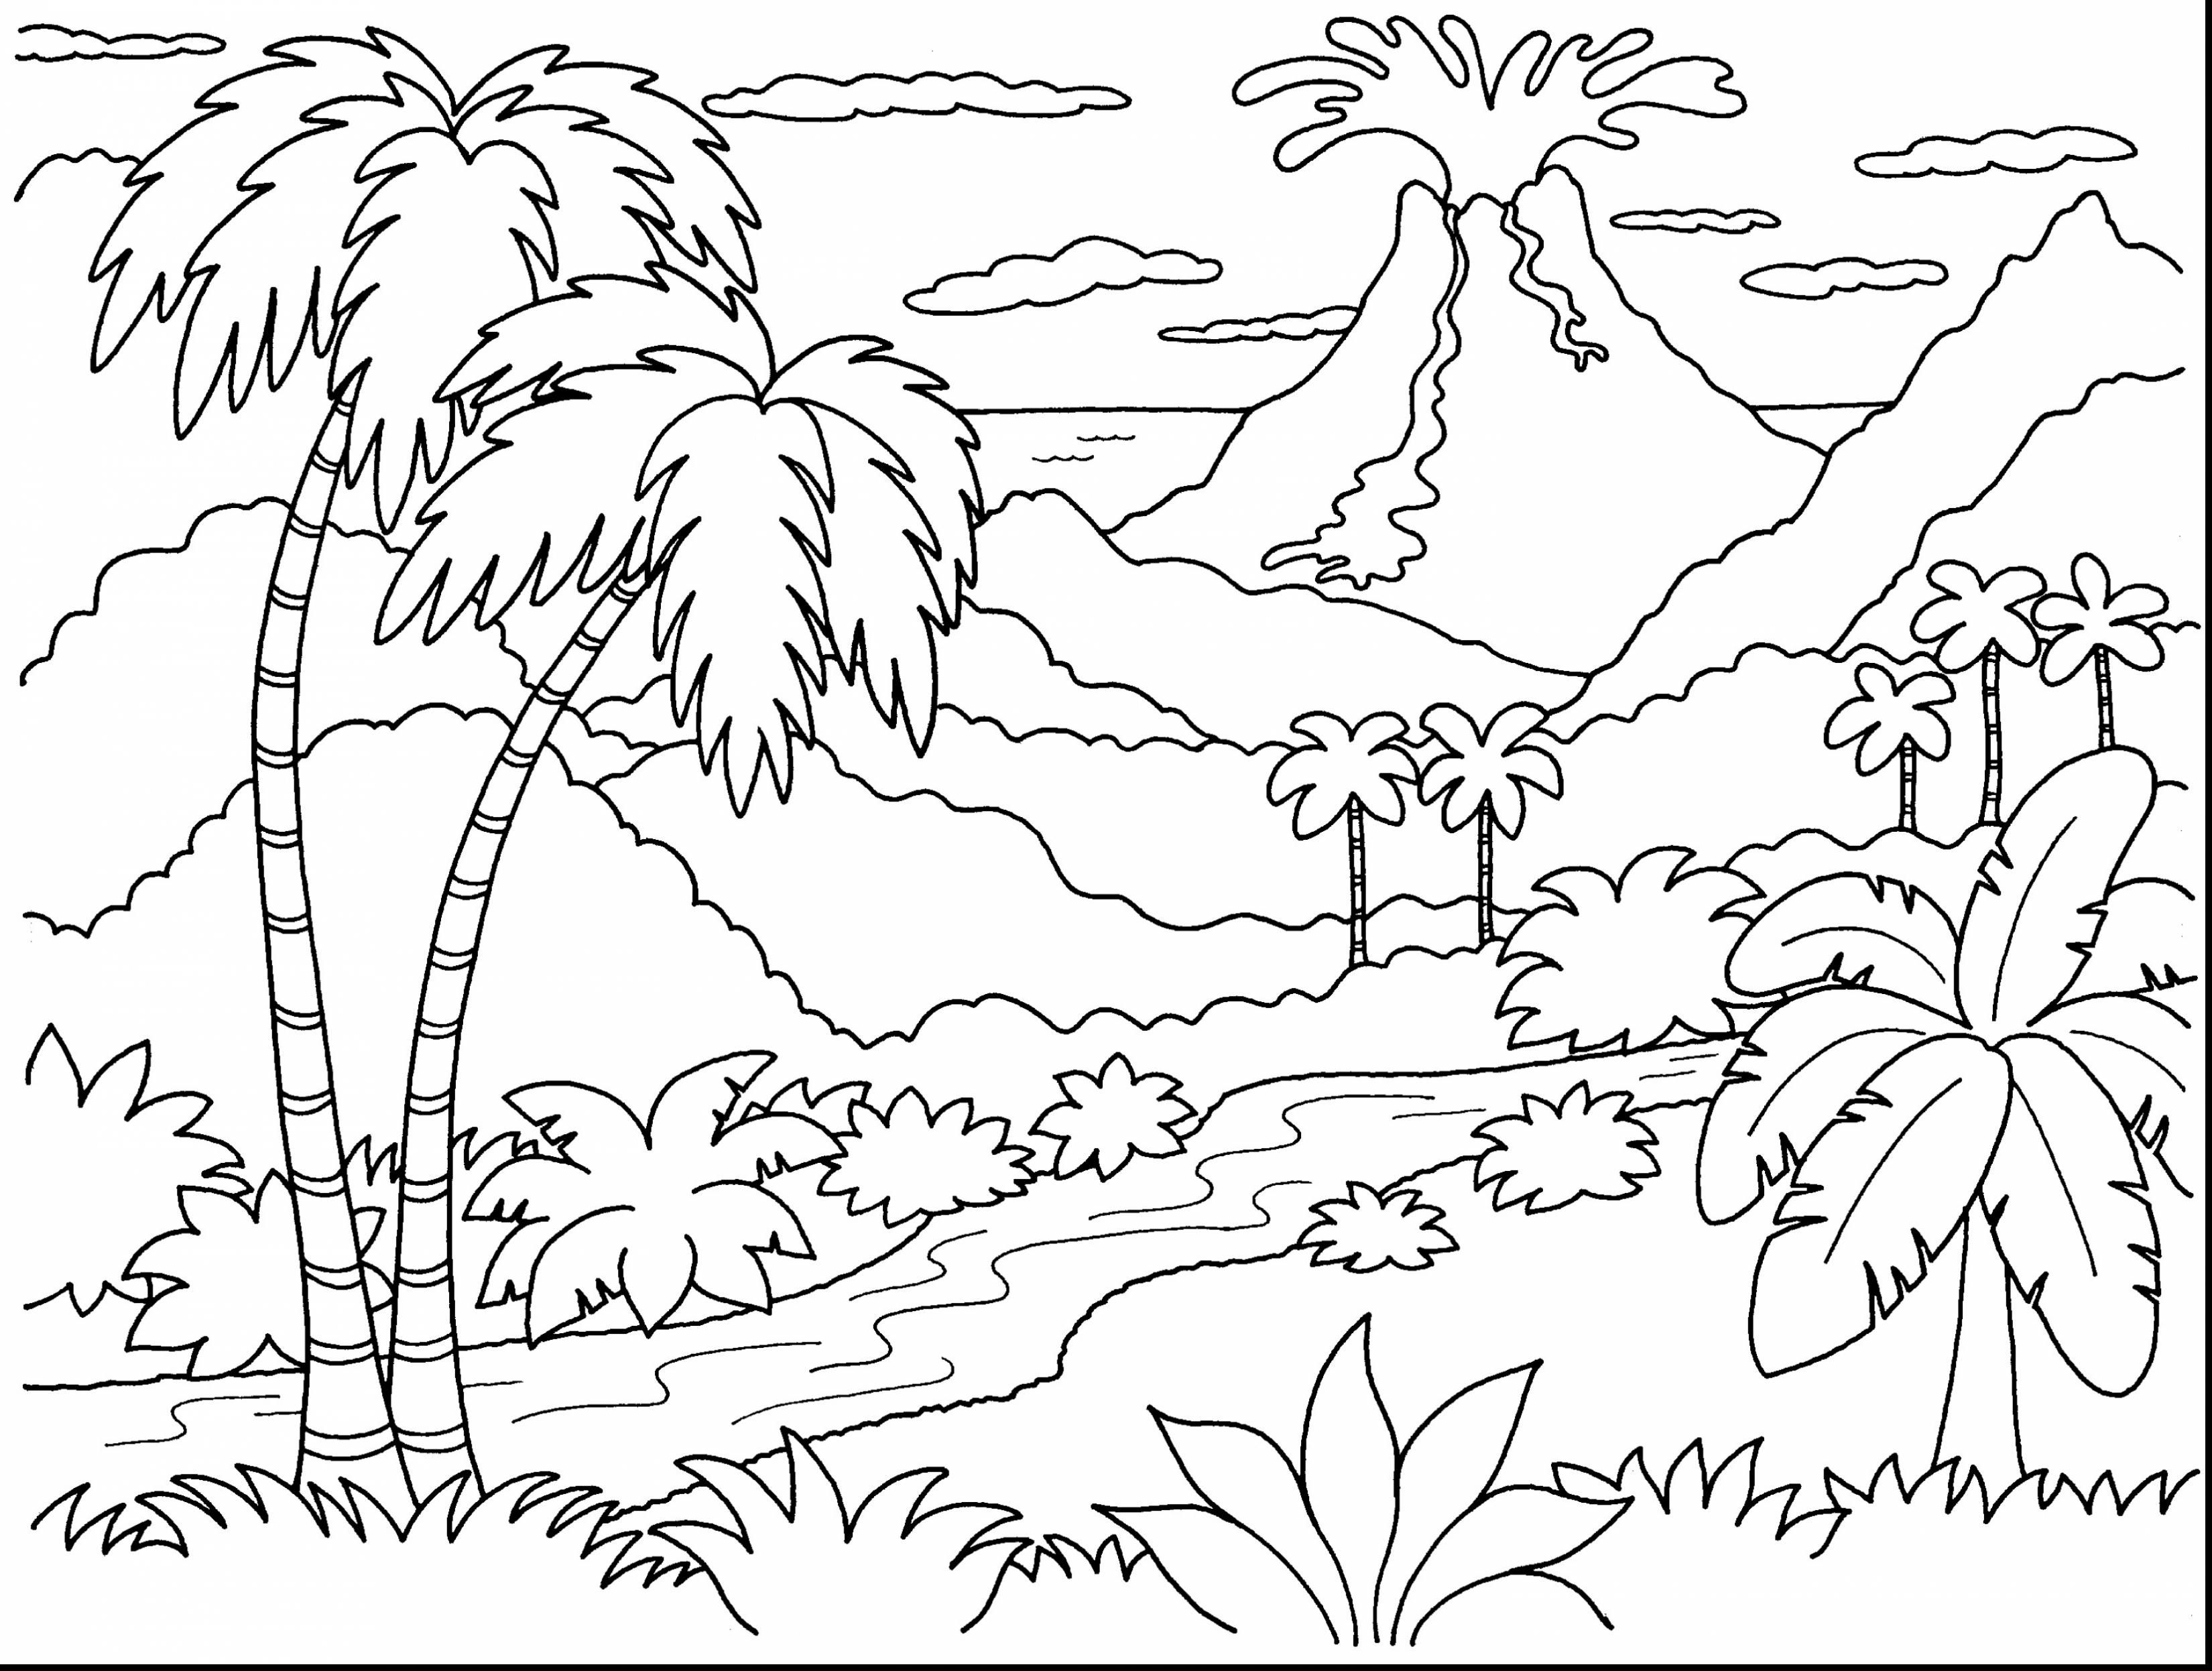 remarkable volcano island coloring page with volcano